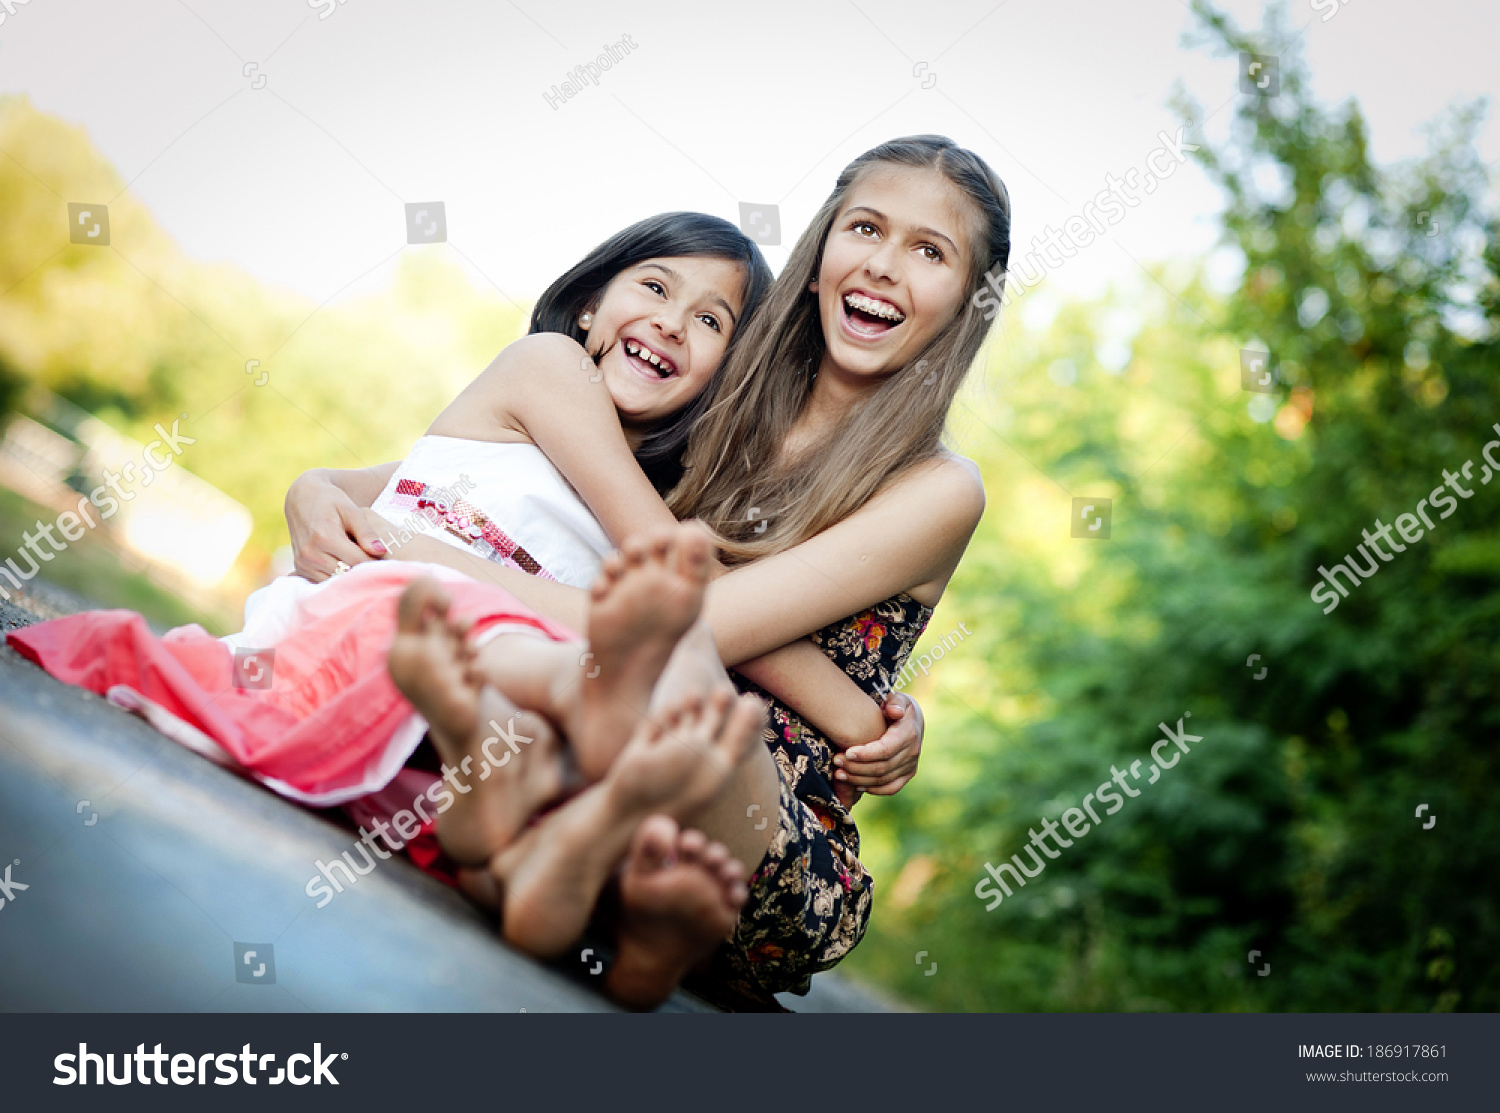 https://image.shutterstock.com/shutterstock/photos/186917861/display_1500/stock-photo-two-sisters-laughing-and-hugging-on-pavement-in-green-sunny-park-186917861.jpg